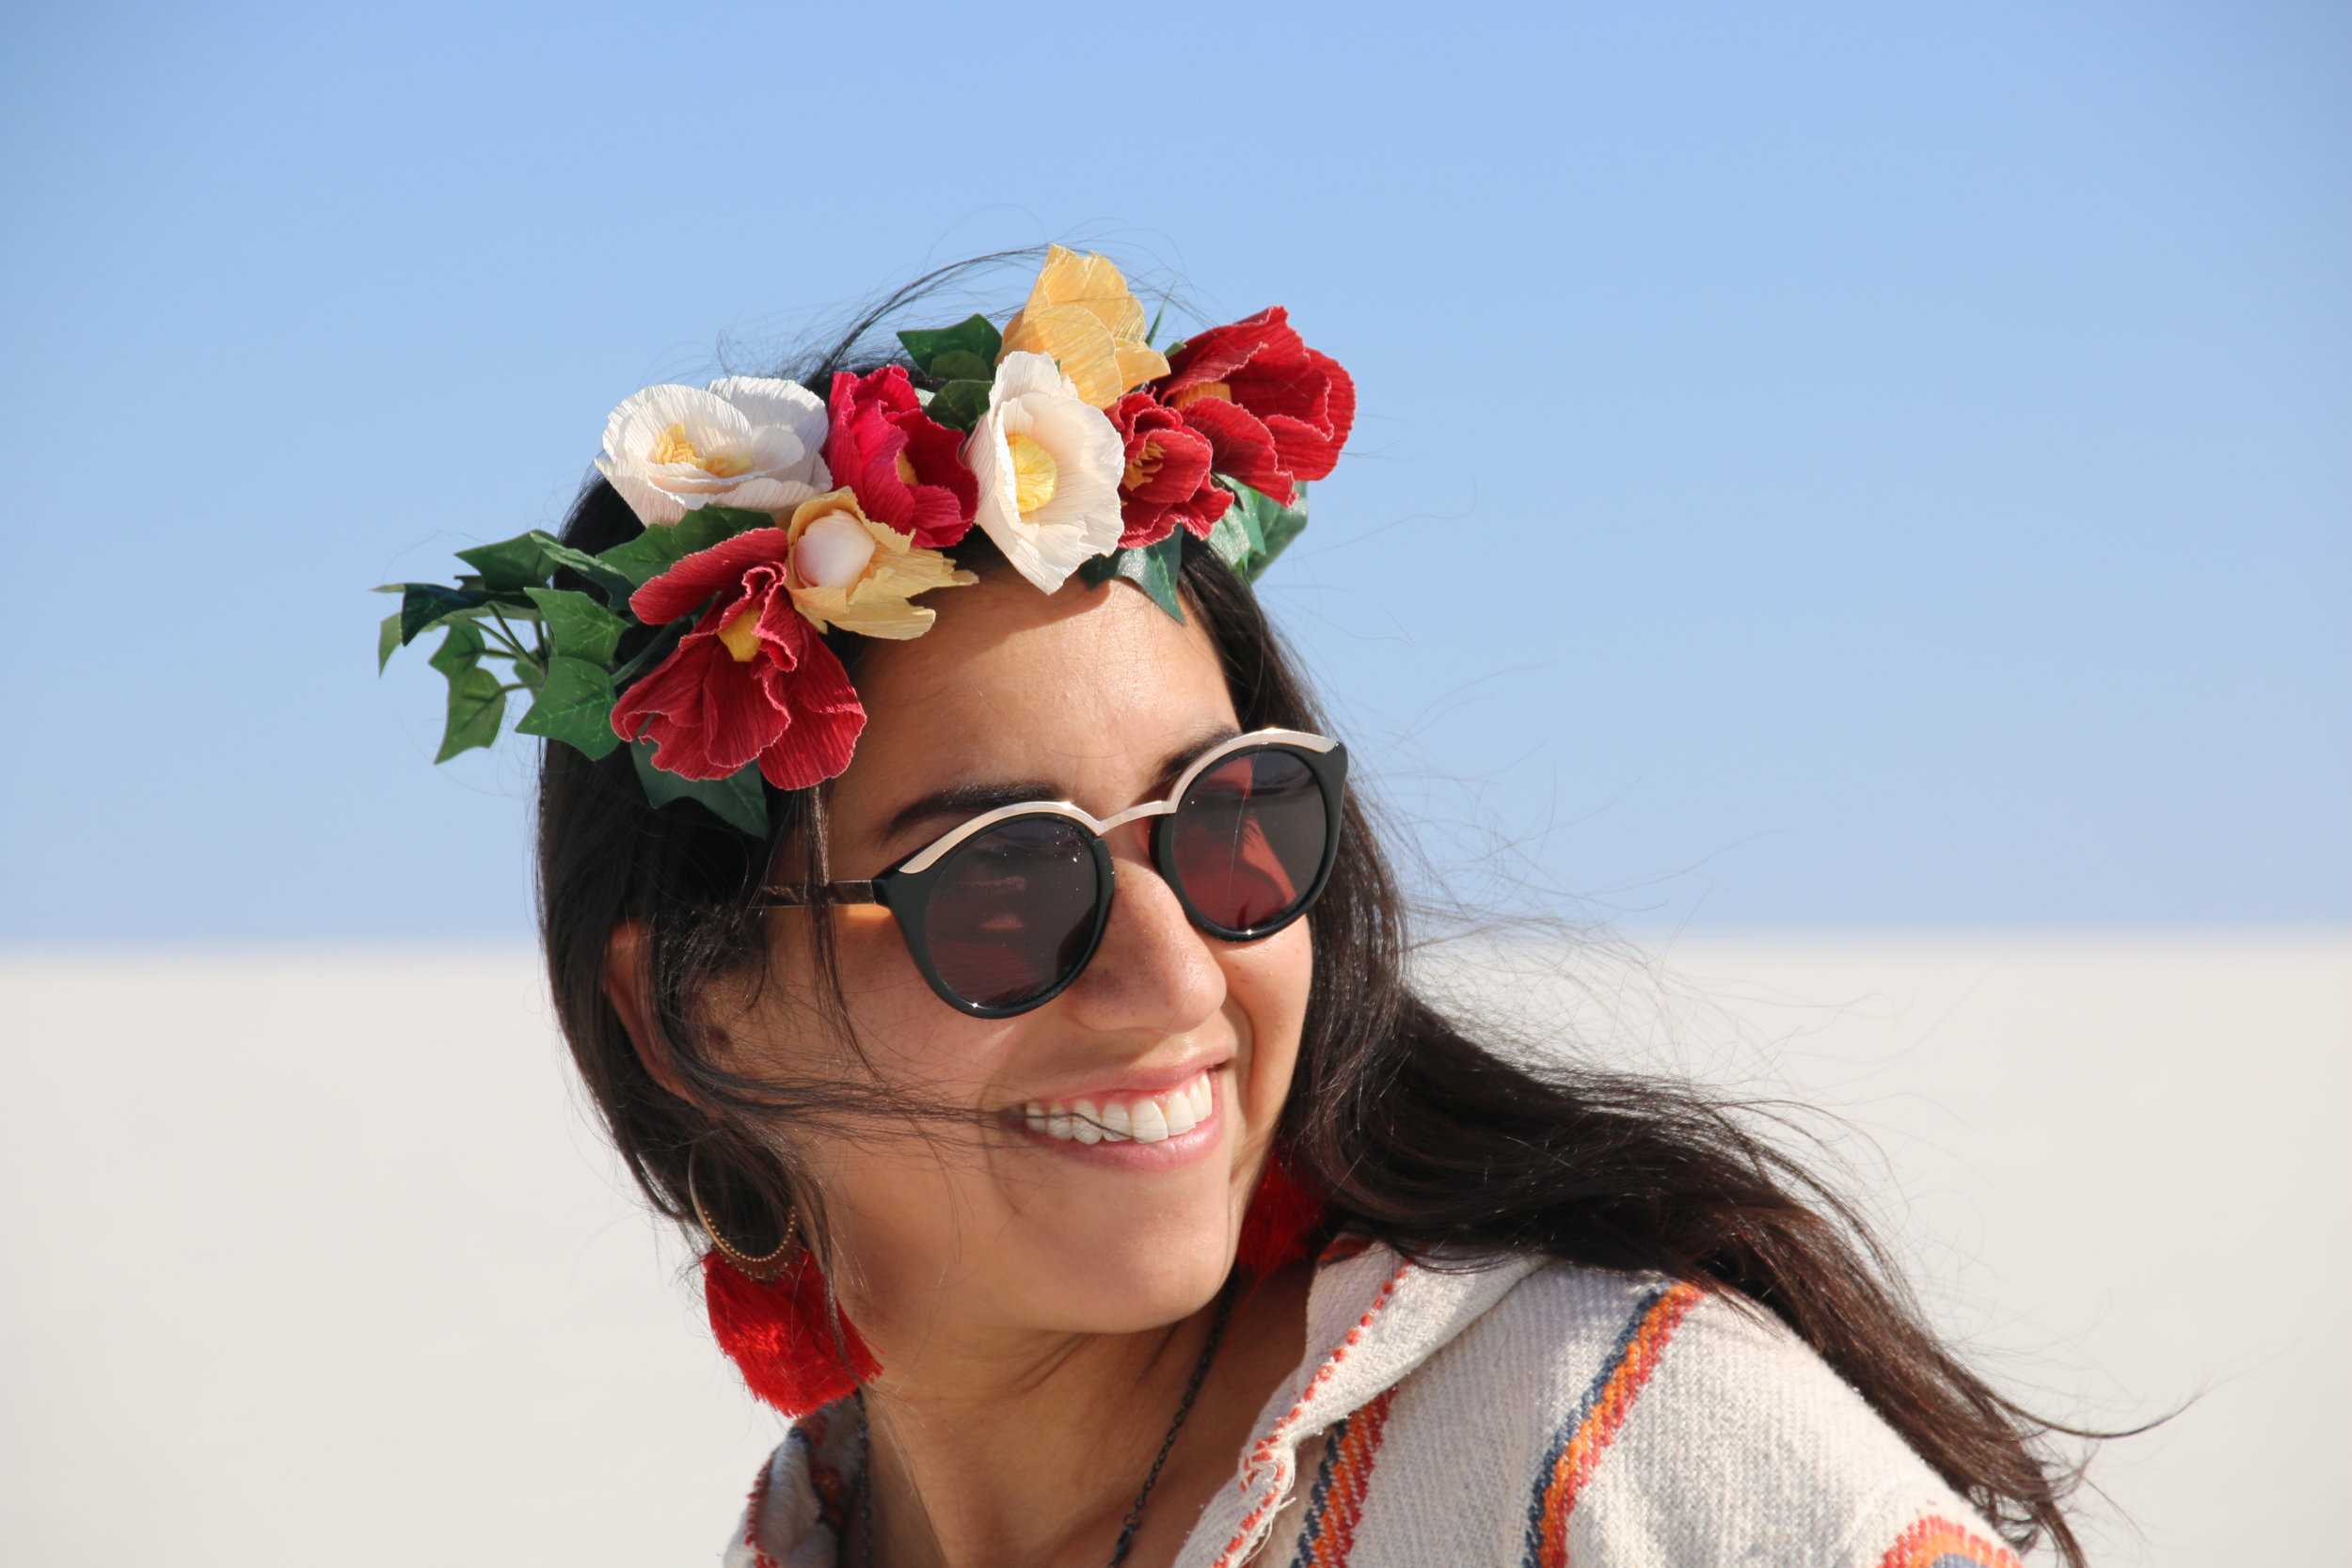 At White Sands National Monument with a flower crown I made!